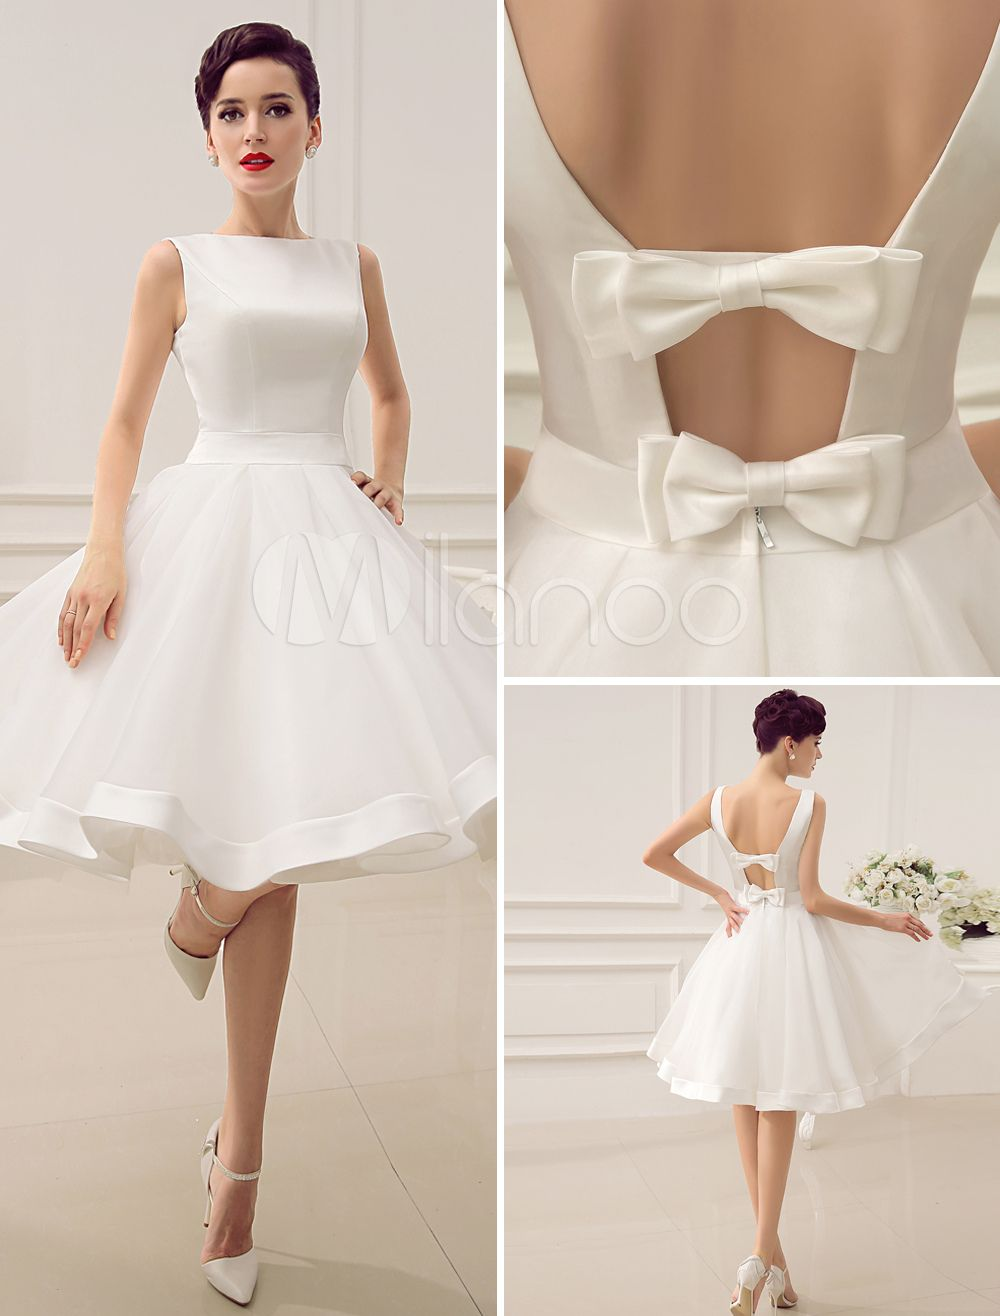 Cut Out Backless Satin Short Wedding Dress with Bow Decor Sash - Milanoo.com d4f68da30a97